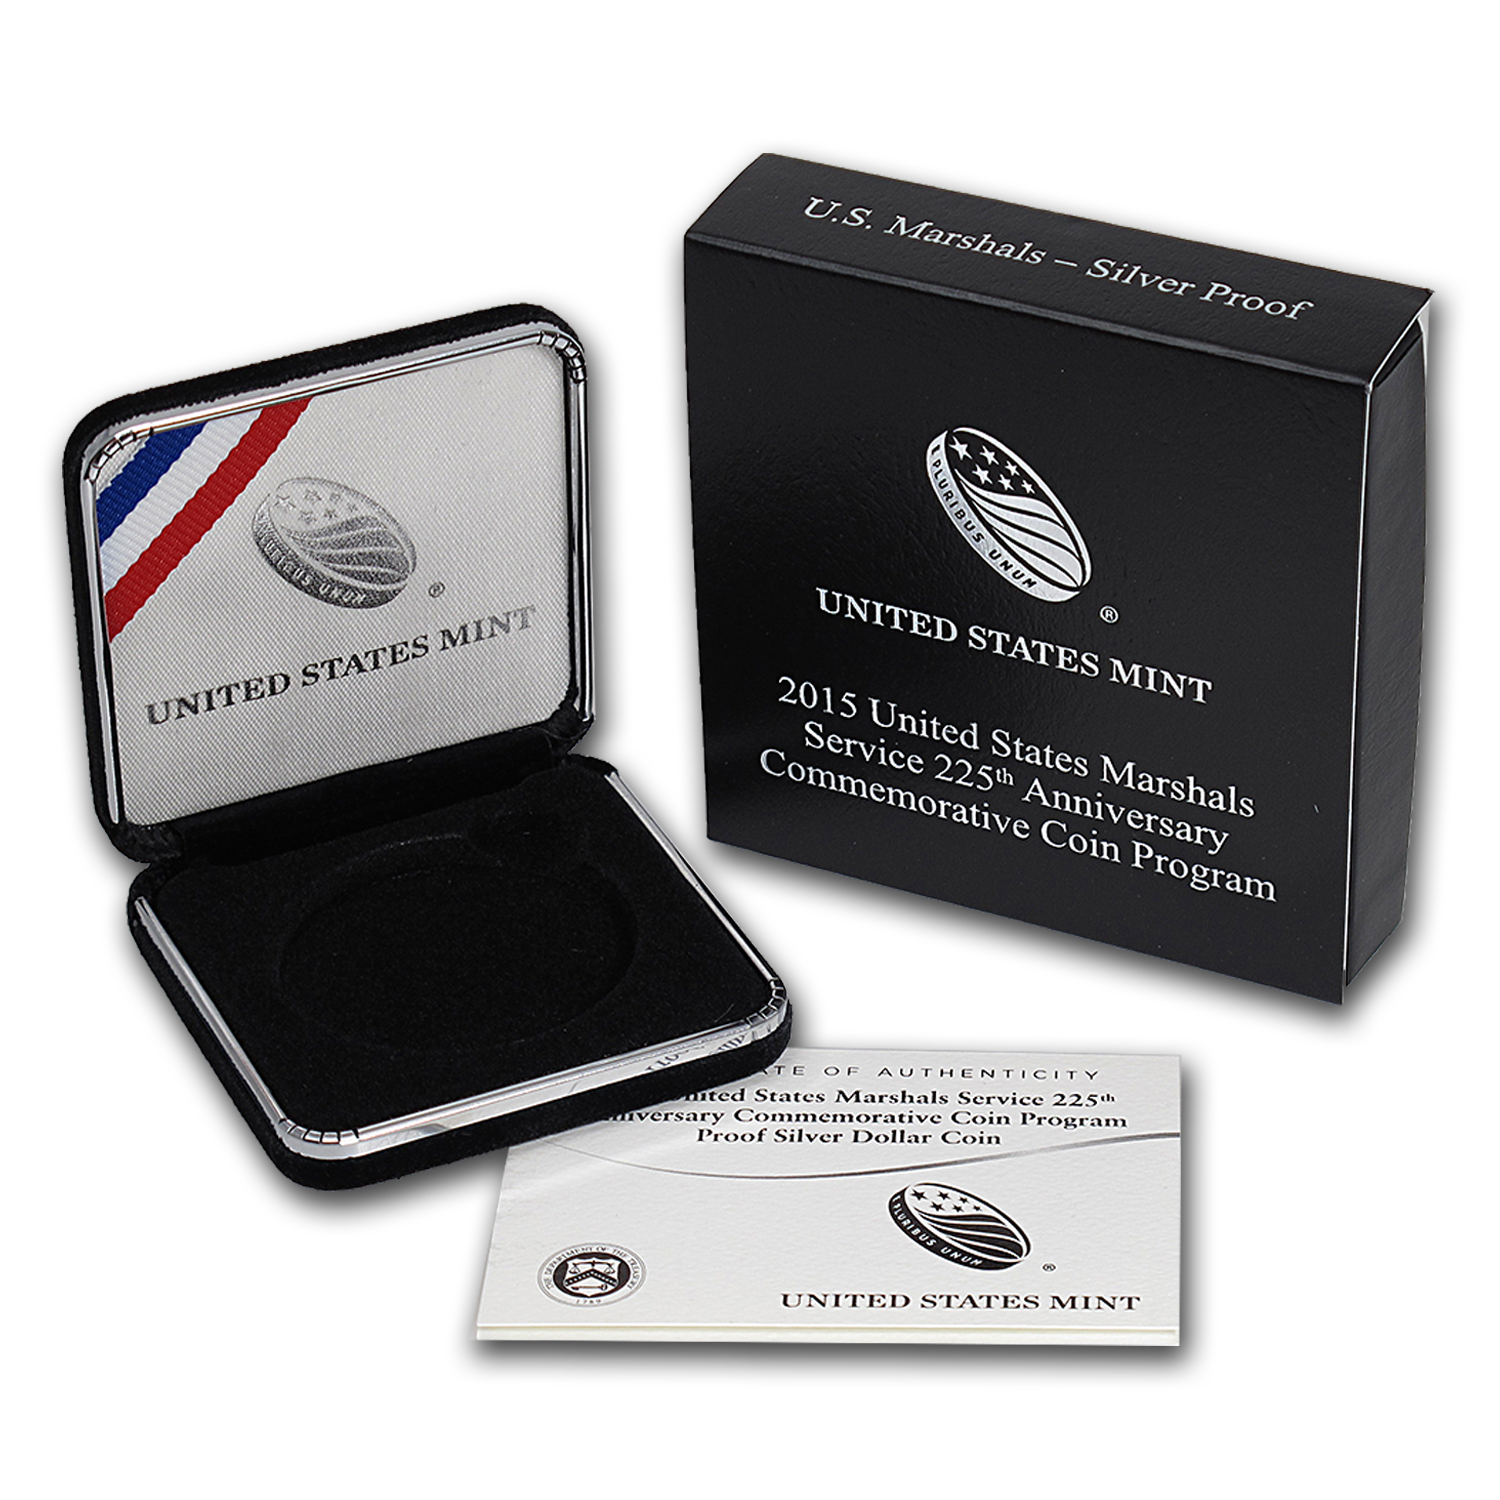 OEM Box & COA - 2015 U.S. Mint U.S. Marshals Silver Proof Coin